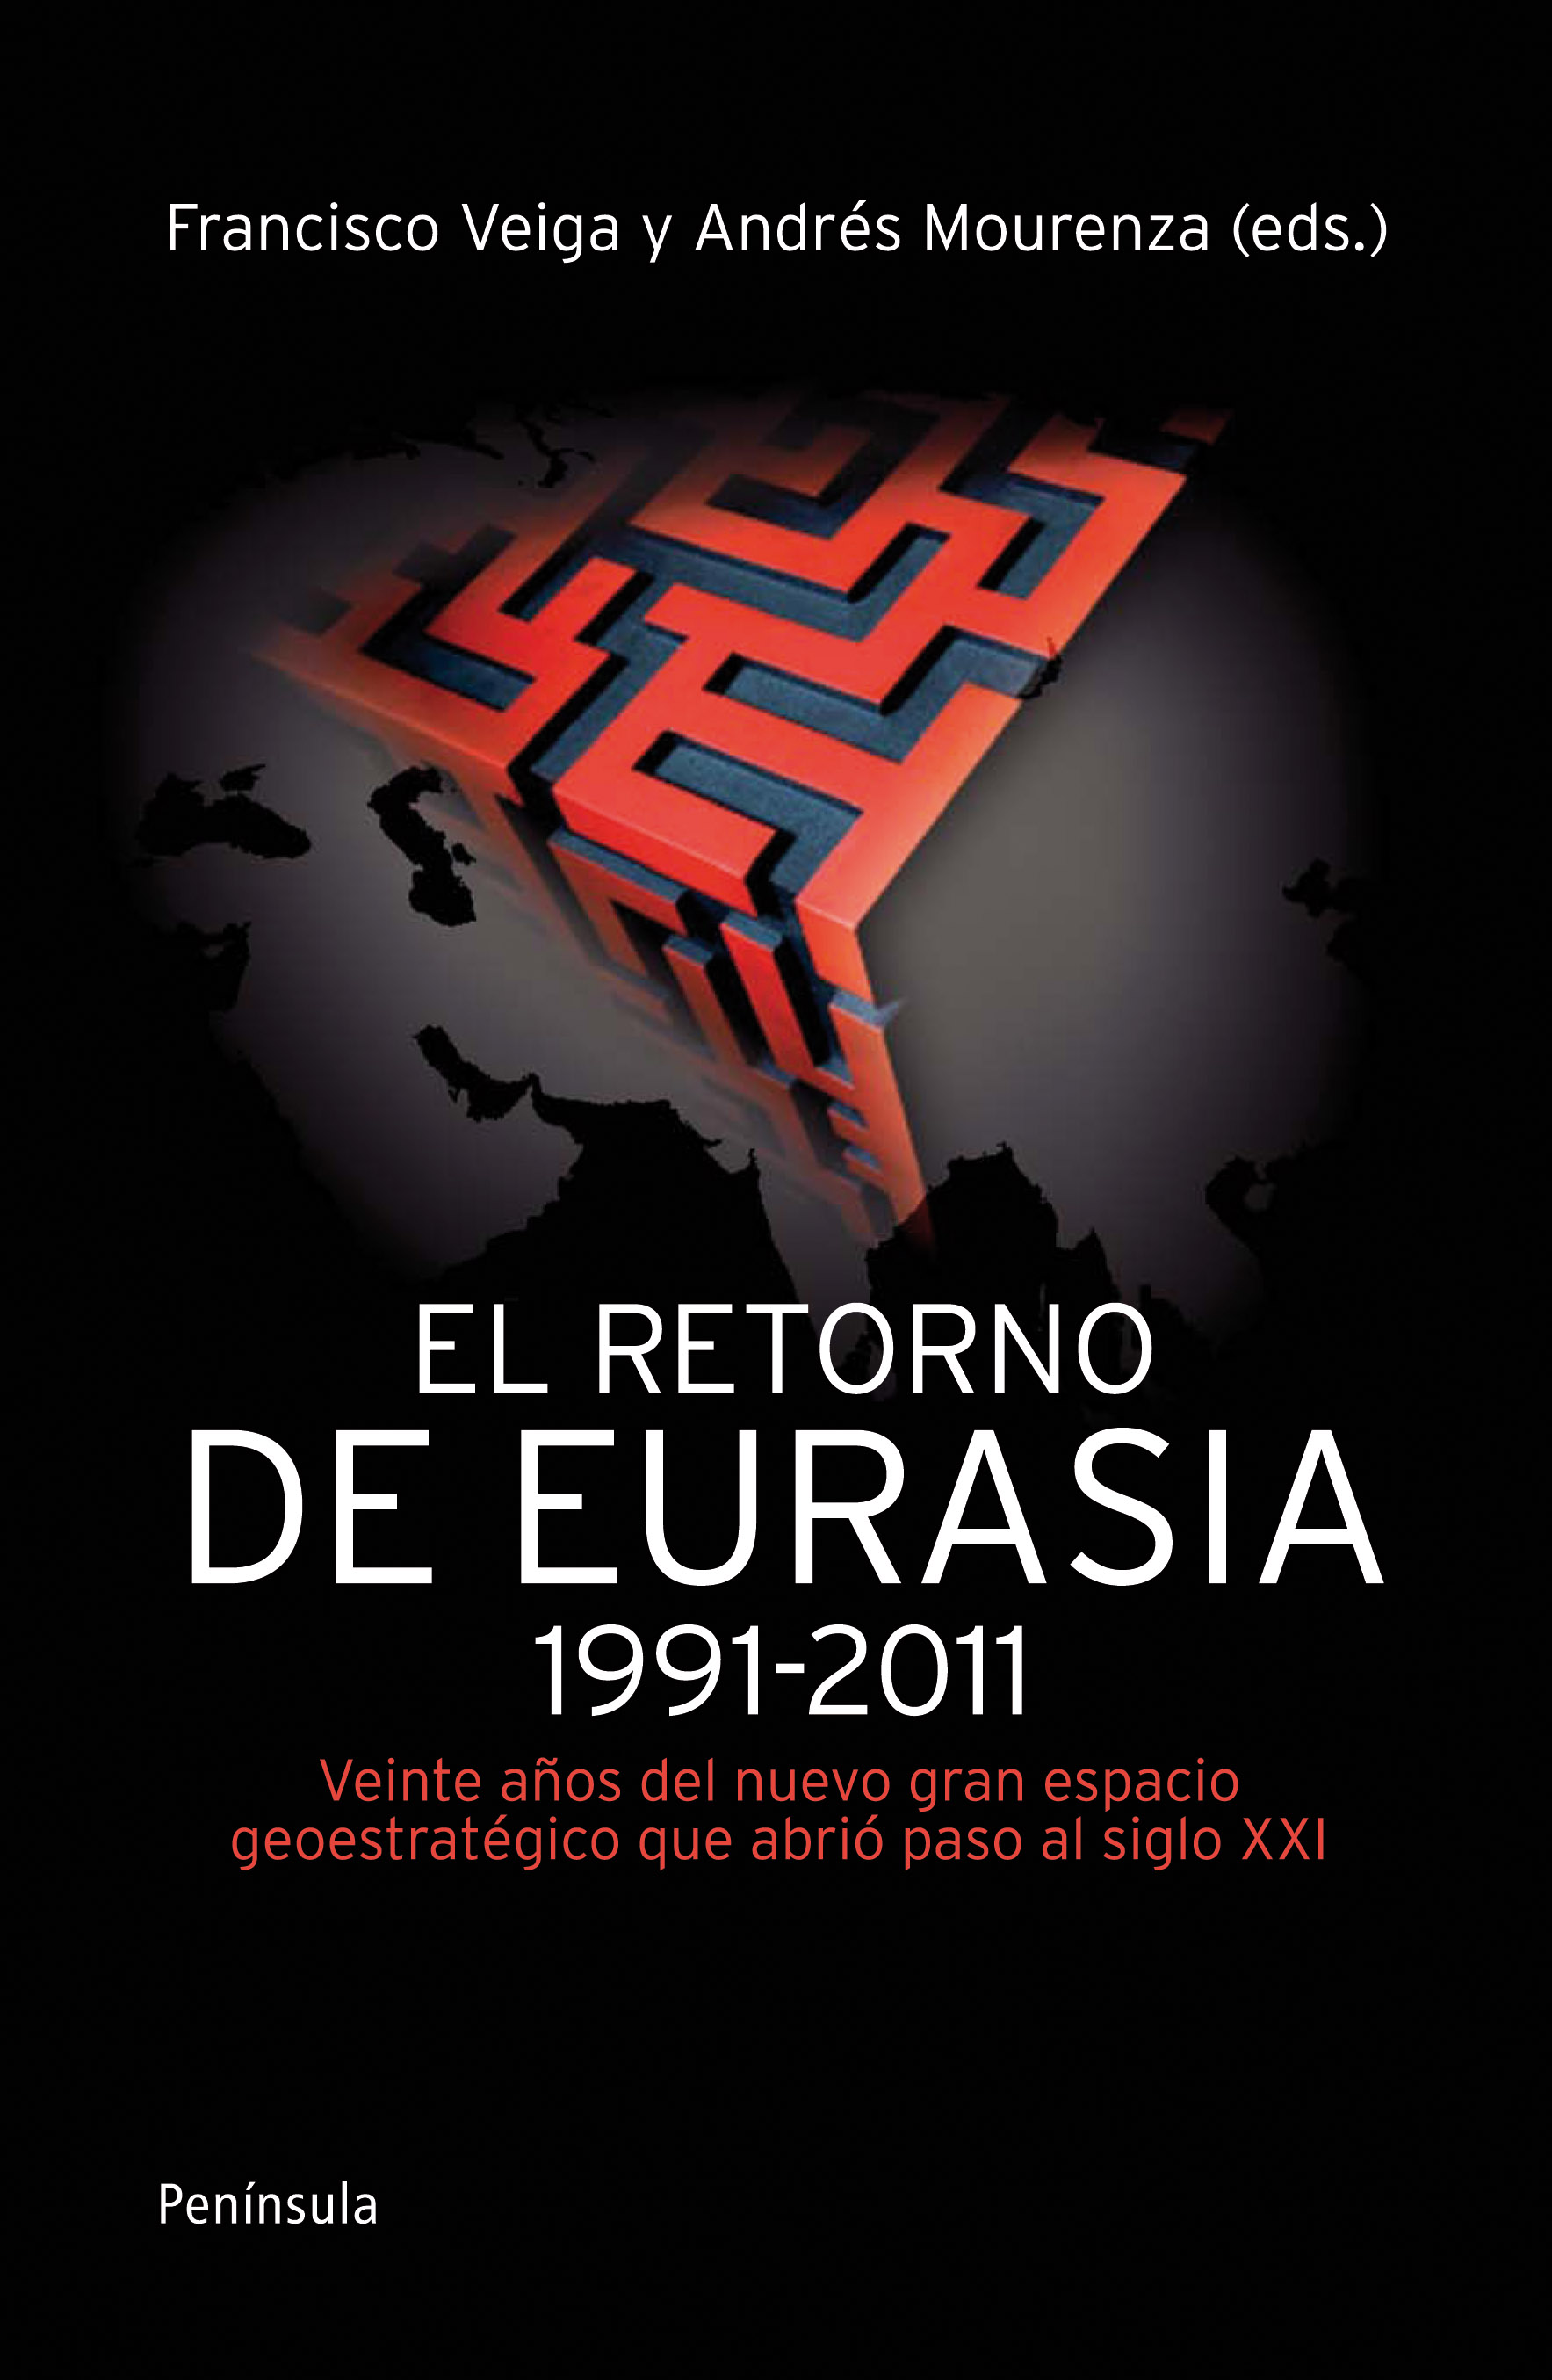 http://eurasianhub.files.wordpress.com/2011/10/retorbo_eurasia.jpg